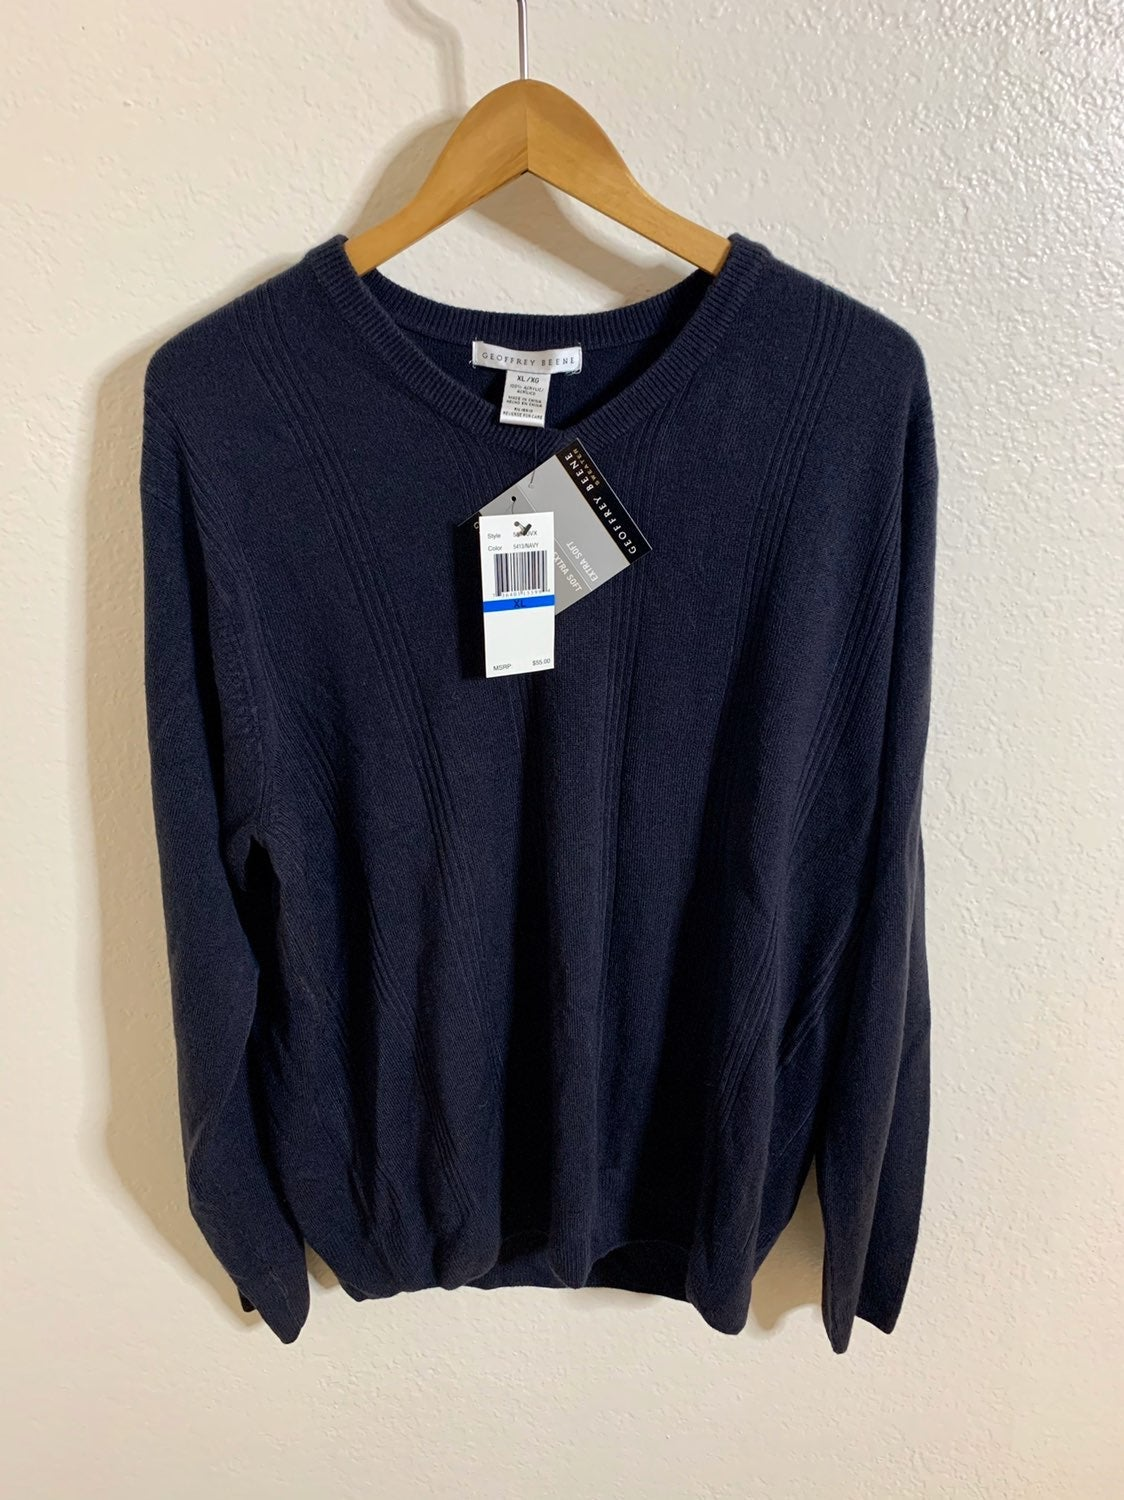 NWT Geoffrey Beene Ribbed Sweater